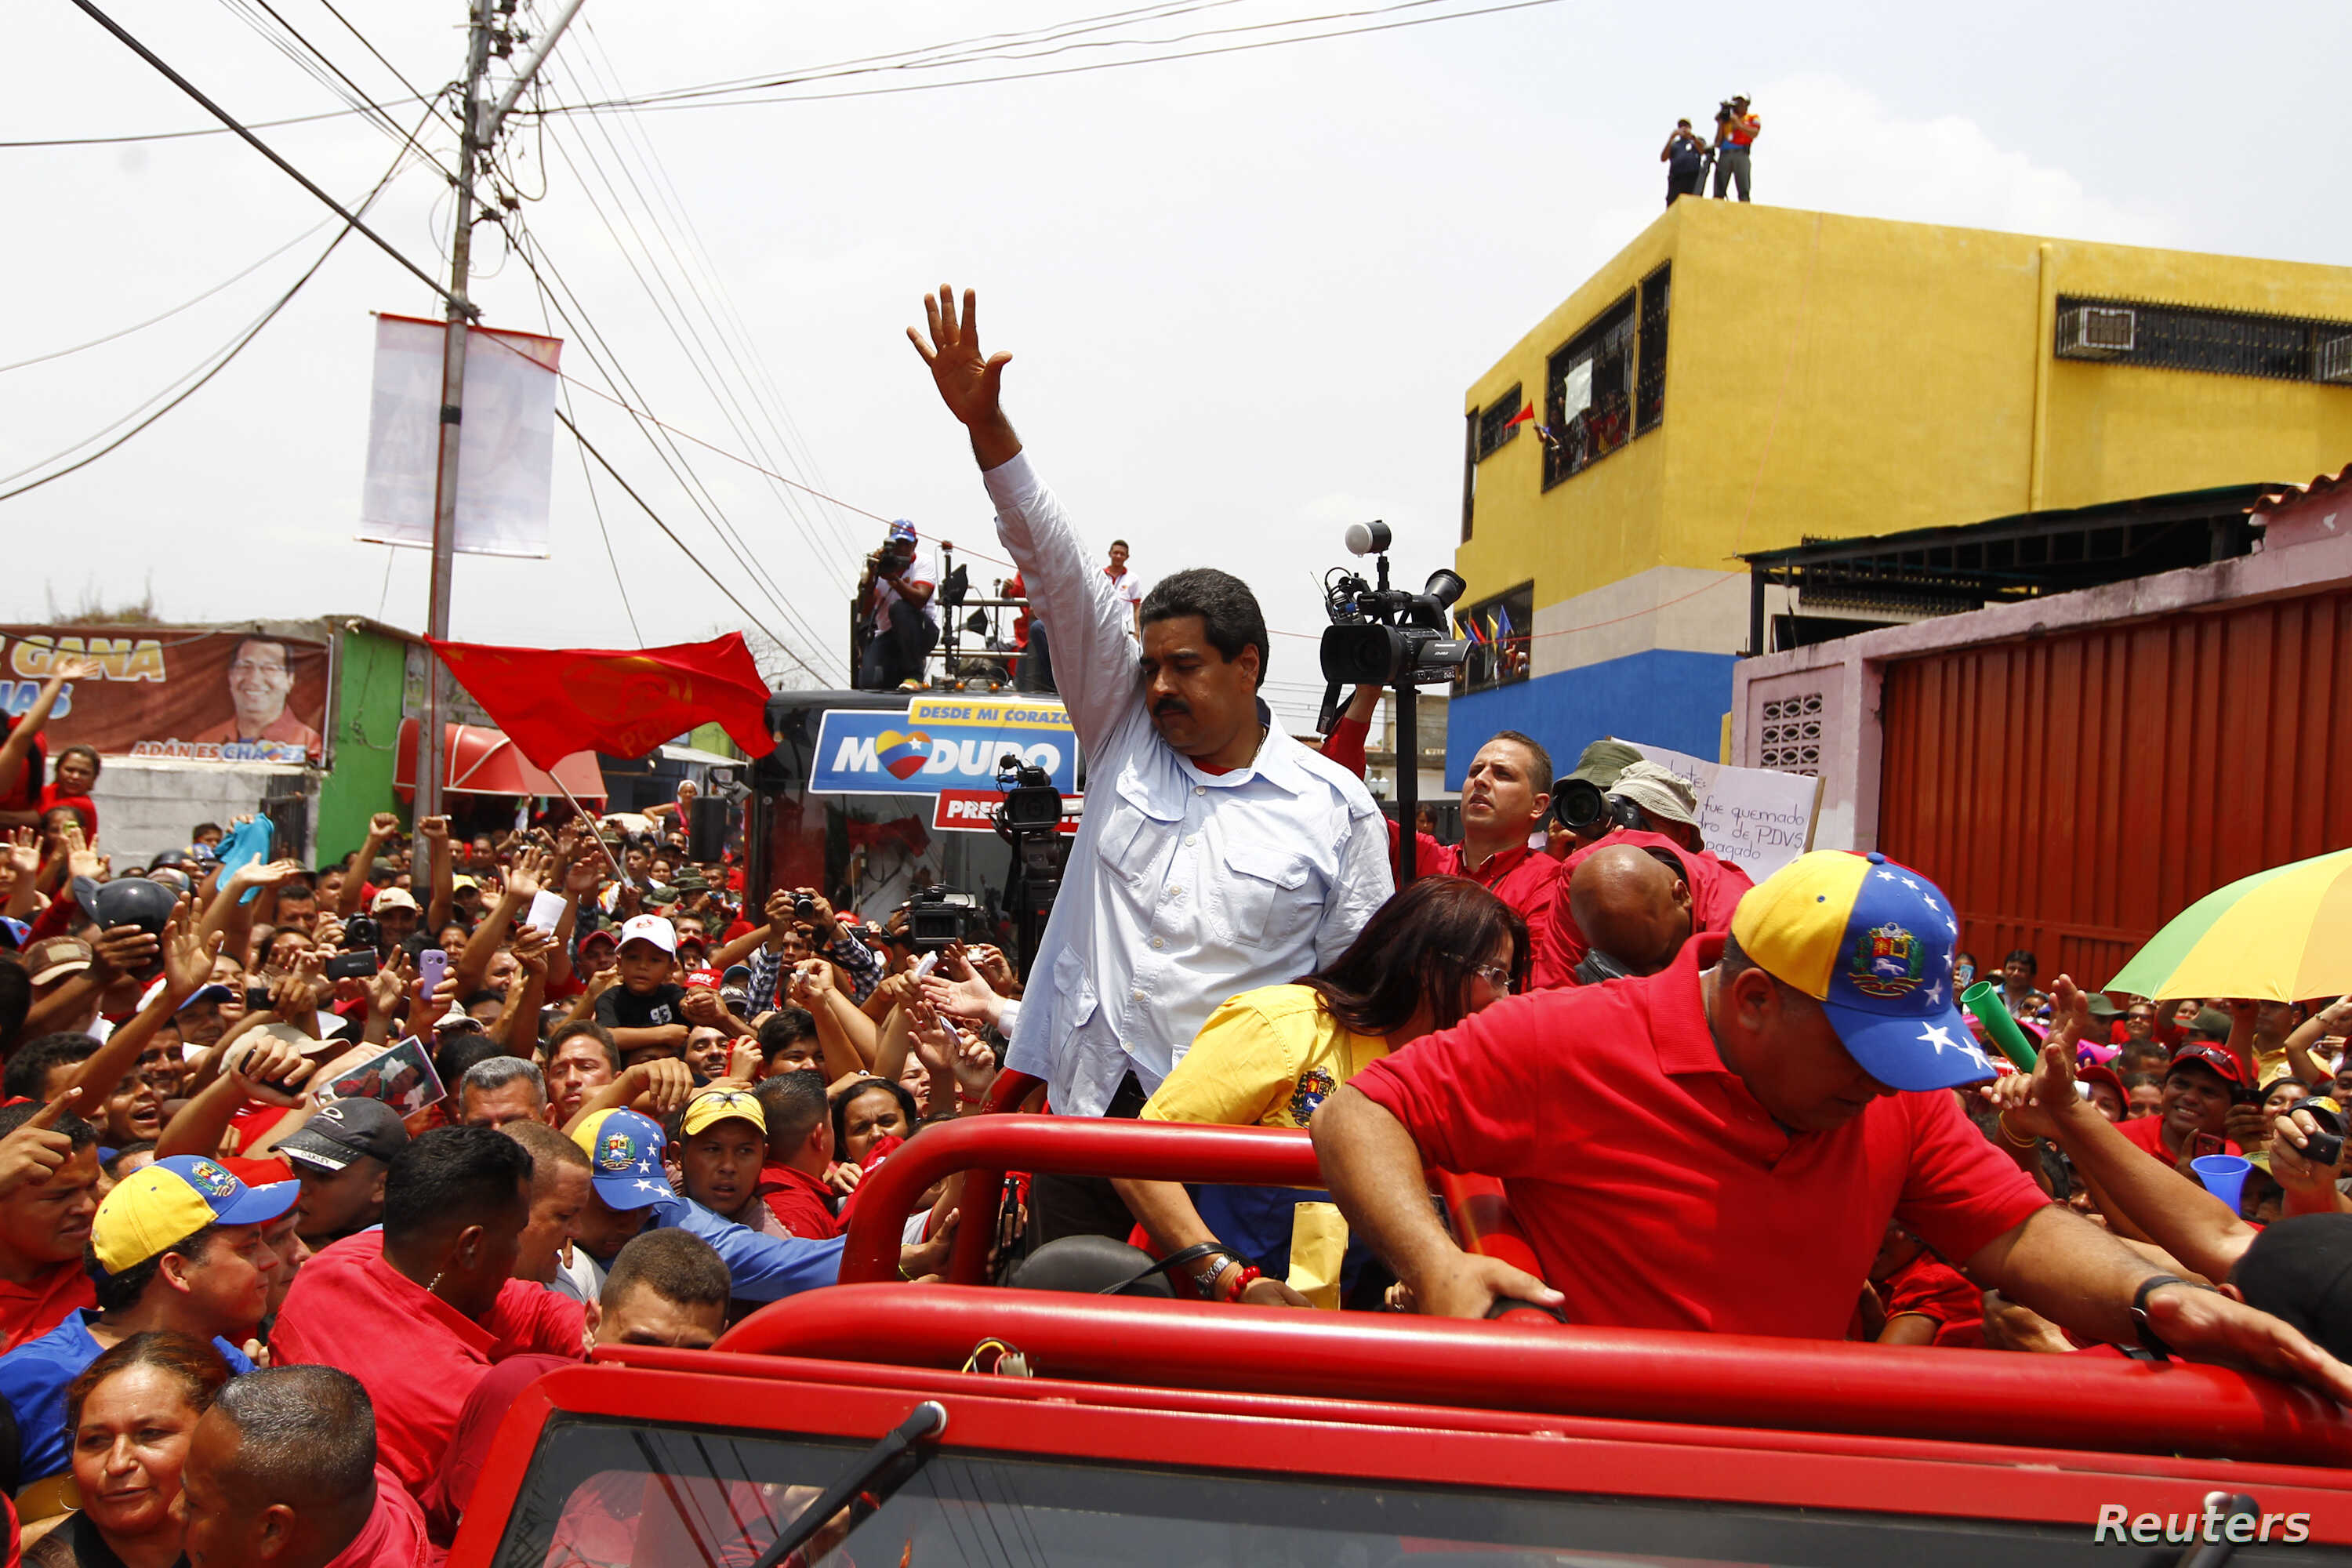 Venezuela's acting President and presidential candidate Nicolas Maduro (C) at campaign rally in state of Barinas April 2, 2013